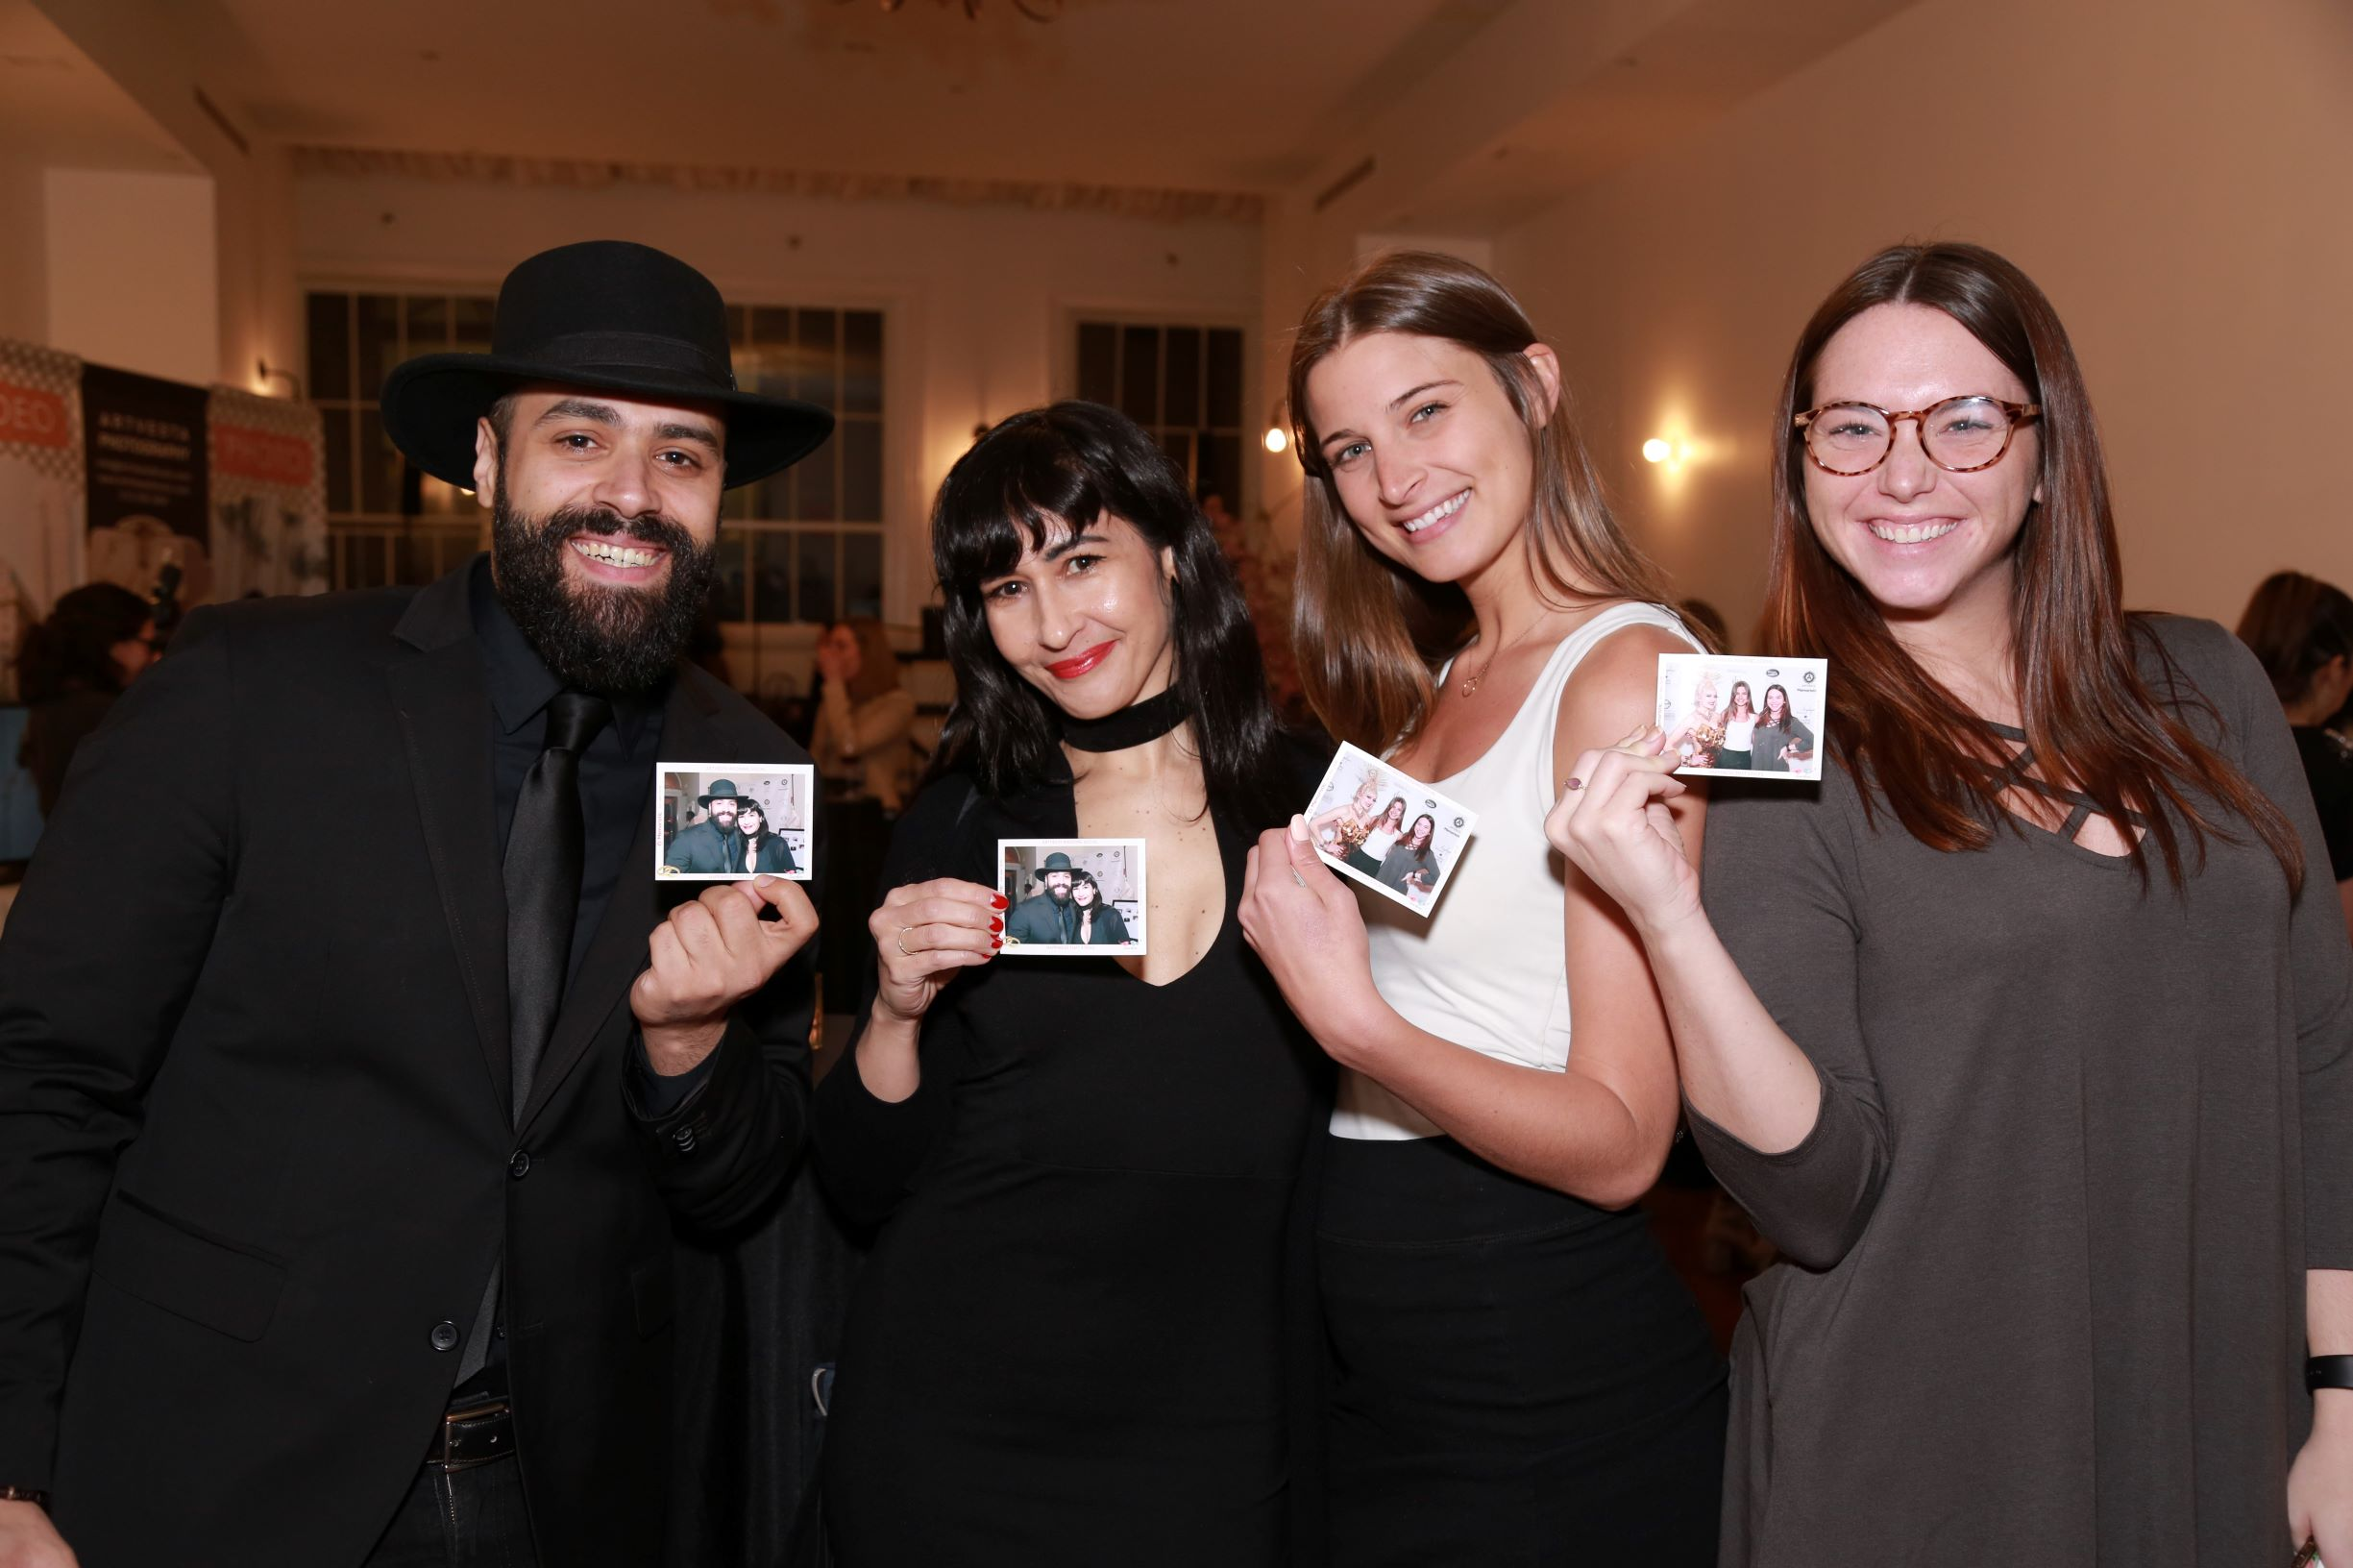 Roaming_Magnet_Photographer_Corporate_Event_Photo_Magnets_Memoristic_Productions.JPG